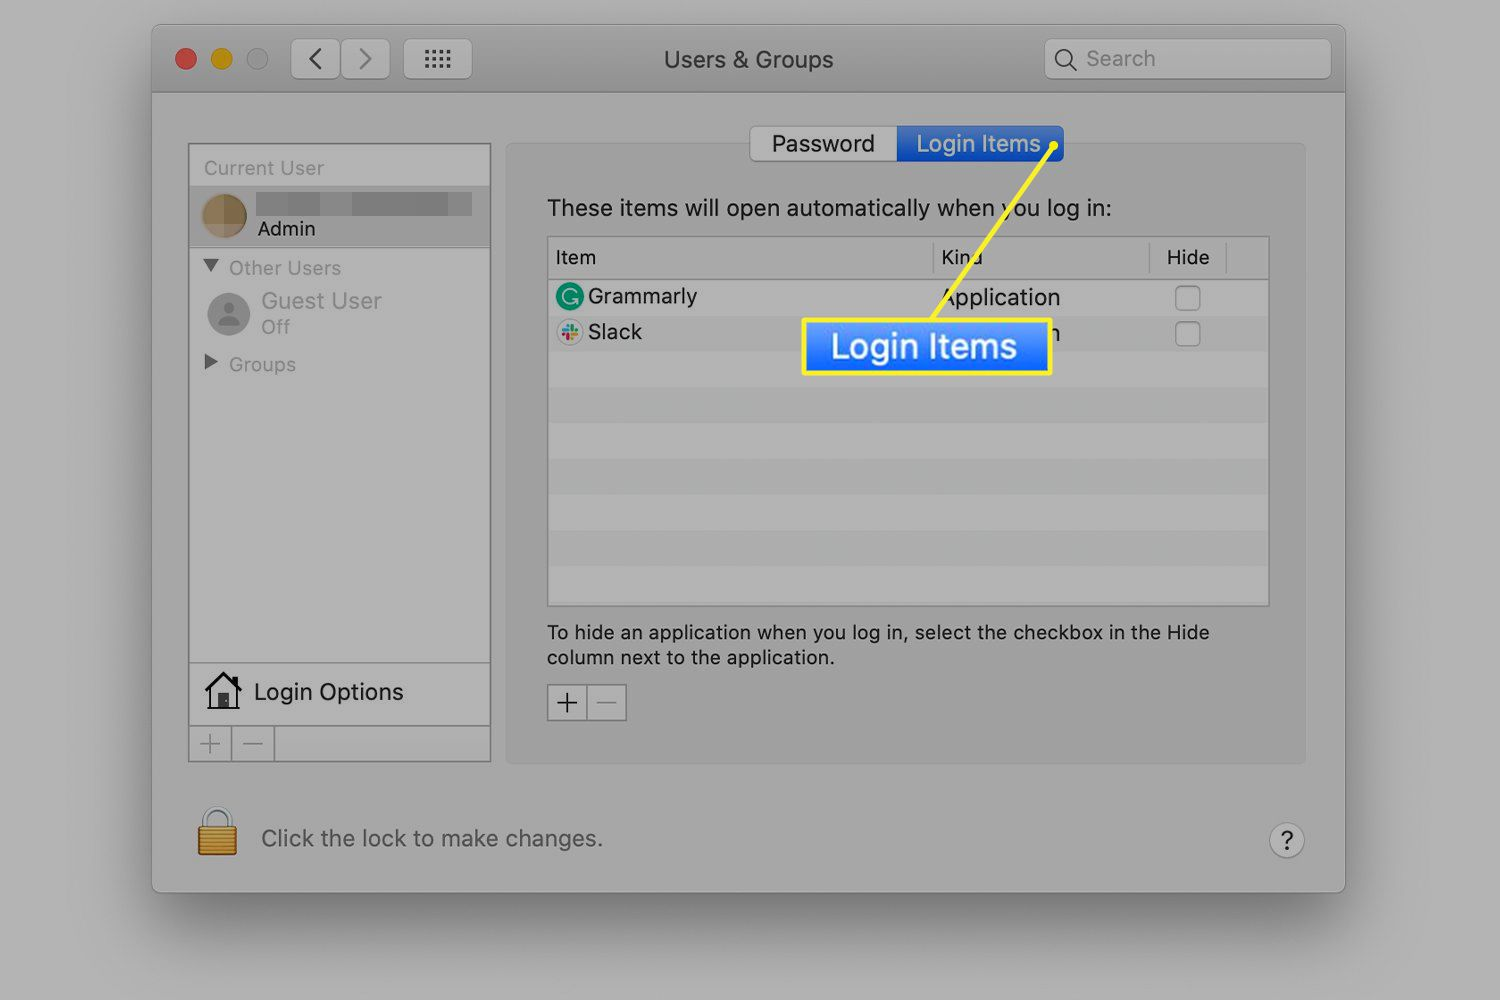 Login Items tab selected on Mac Users & Groups preference screen